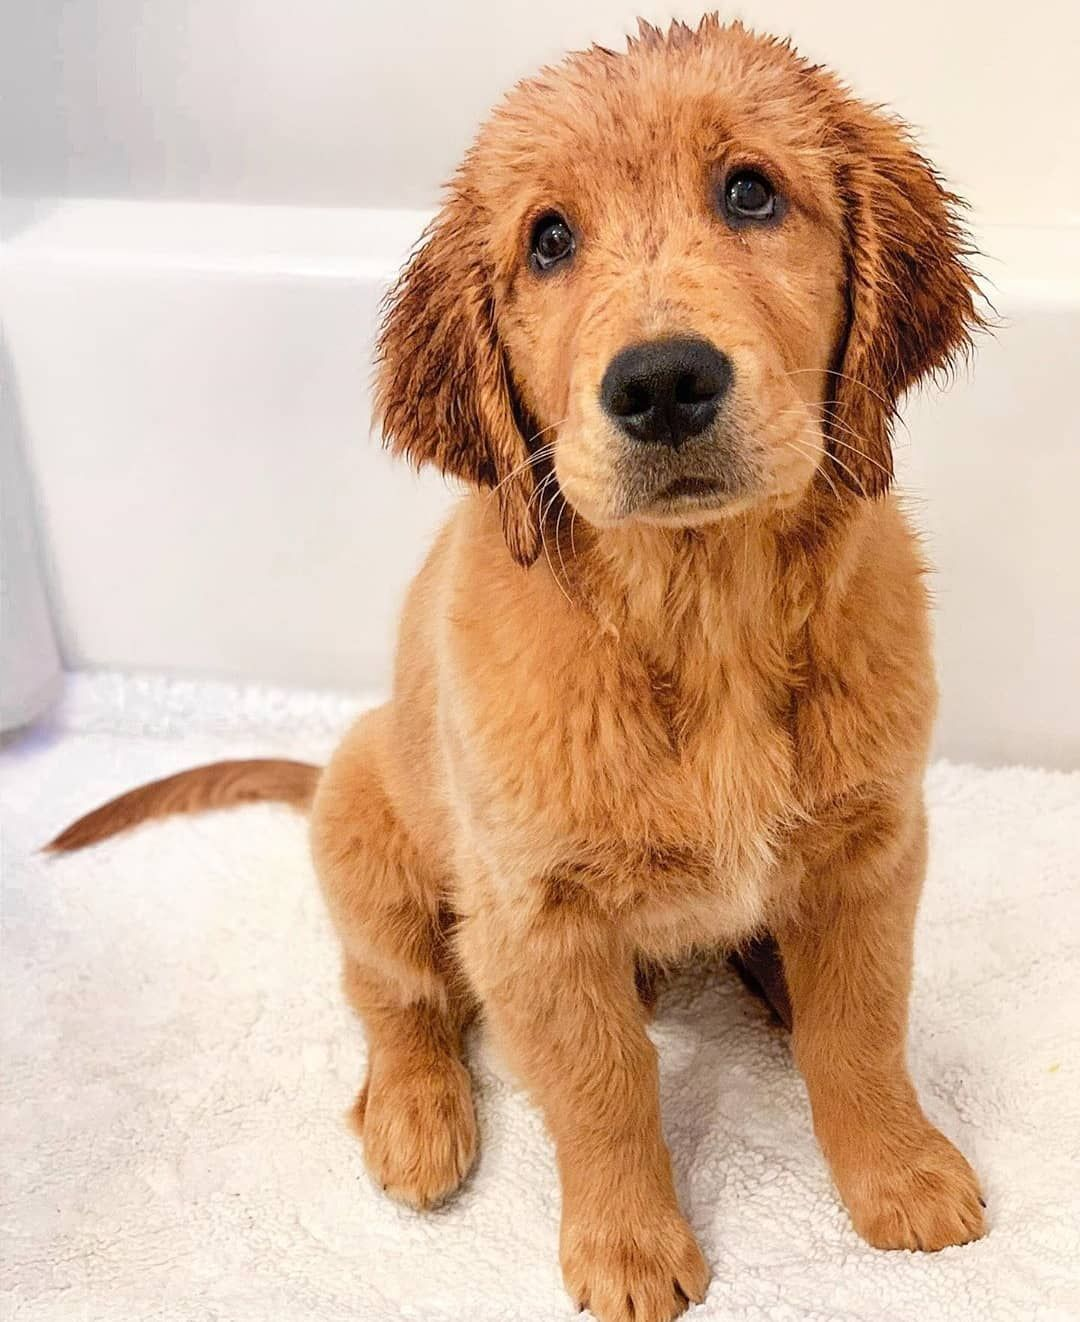 Pin By Jose On Golden Retriever In 2020 Cute Baby Animals Cute Little Animals Beautiful Dogs